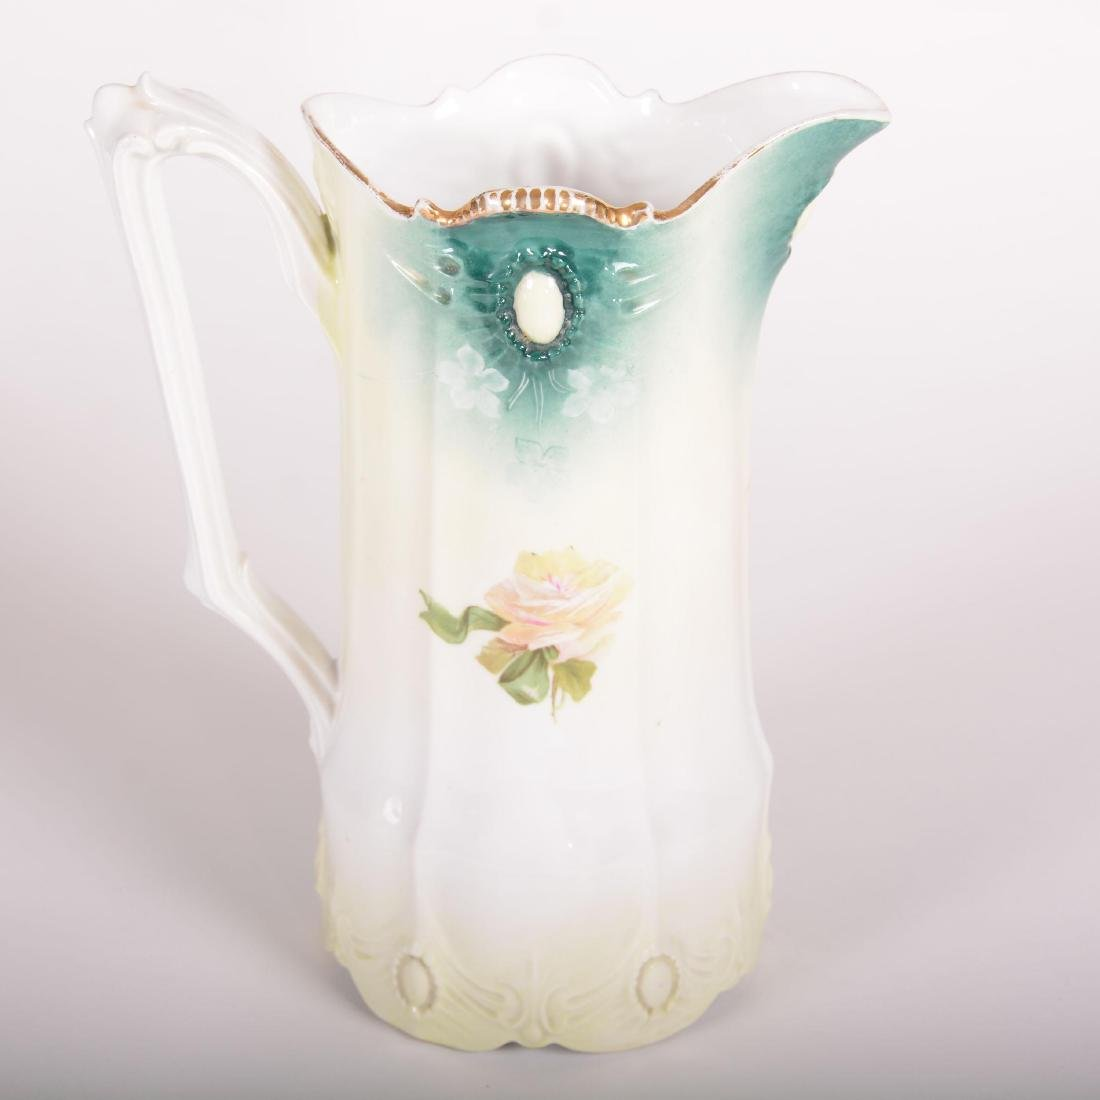 "Pitcher - Marked R.S. Prussia - 9.5"" - 2"